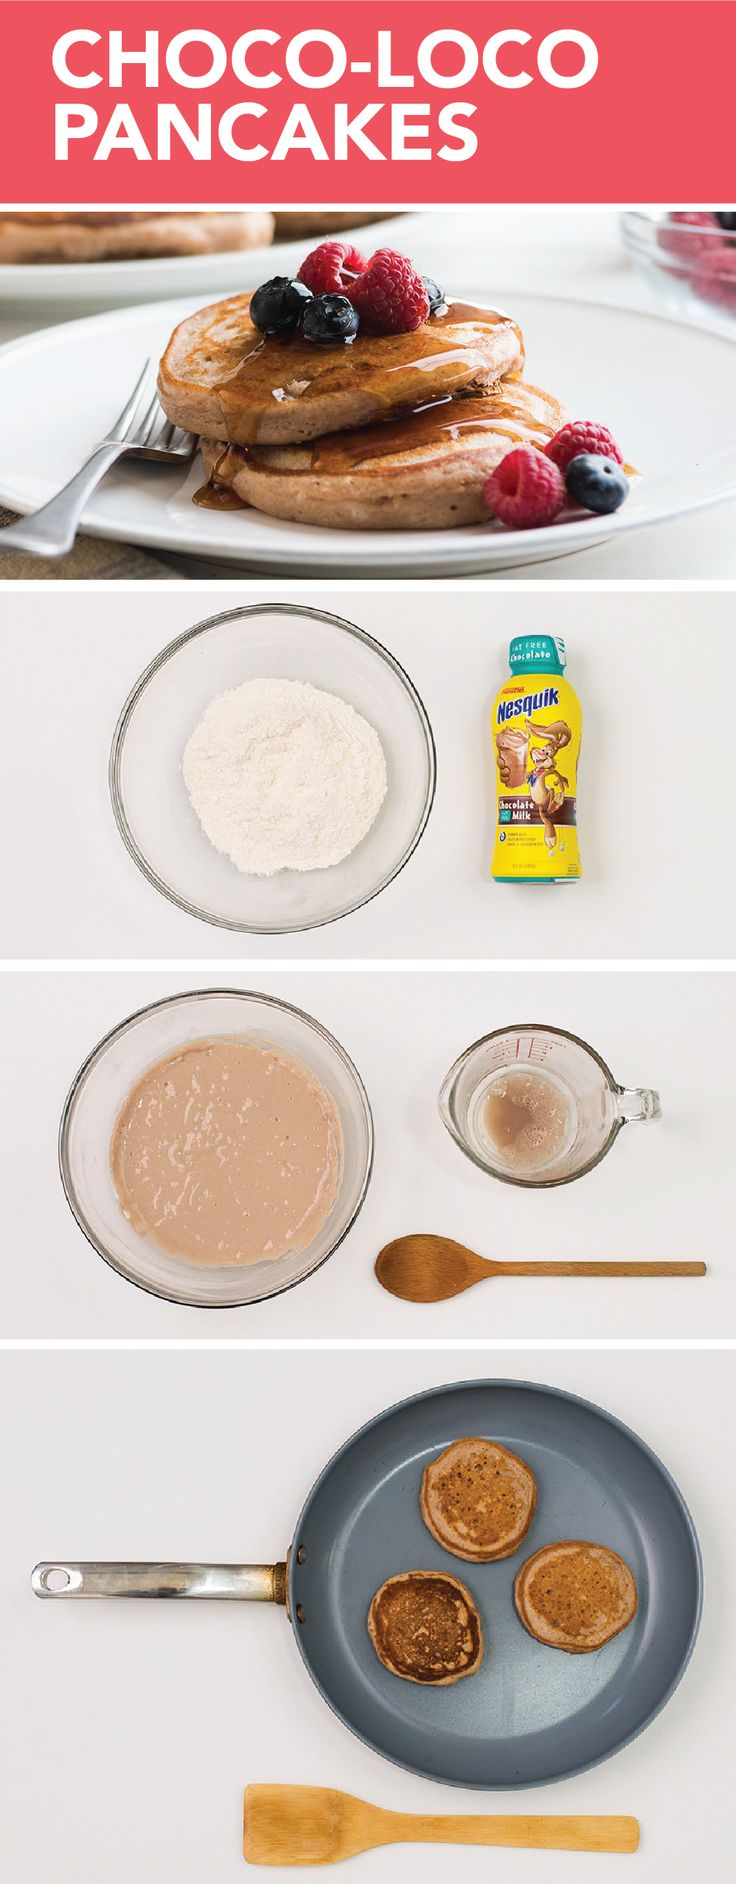 Incorporate a special twist on a traditional breakfast meal by making Choco-Loco Pancakes. Instead of using water, us Nestlé® Nesquik® Ready-to-Drink Chocolate Fat Free Milk to get that additional sweet taste.